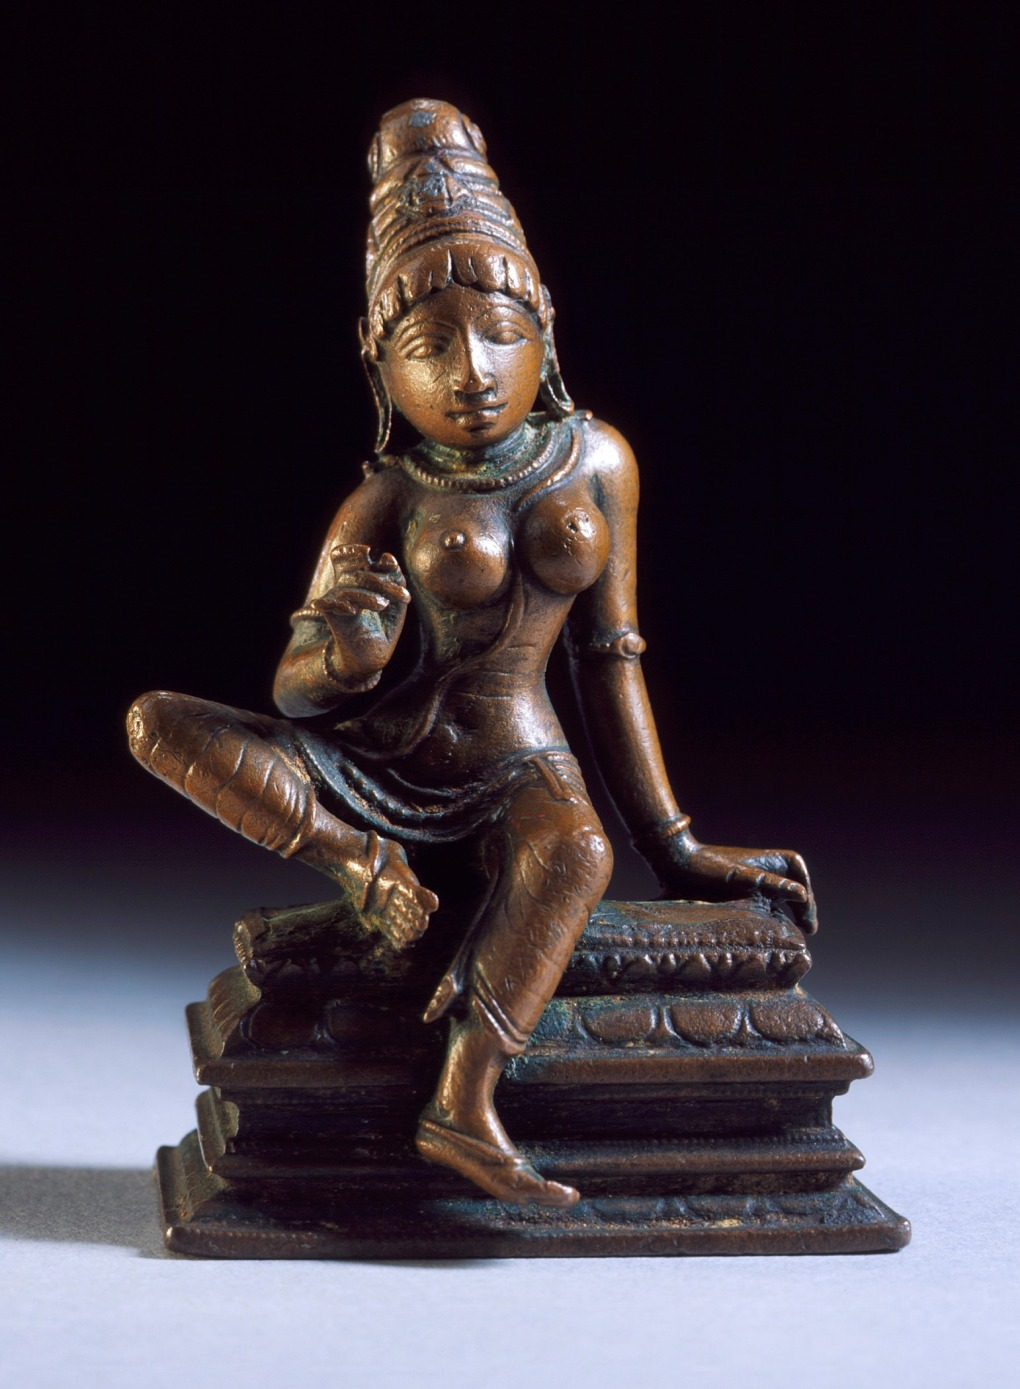 The_Hindu_Goddess_Parvati_LACMA_M.72.1.14_(1_of_2)